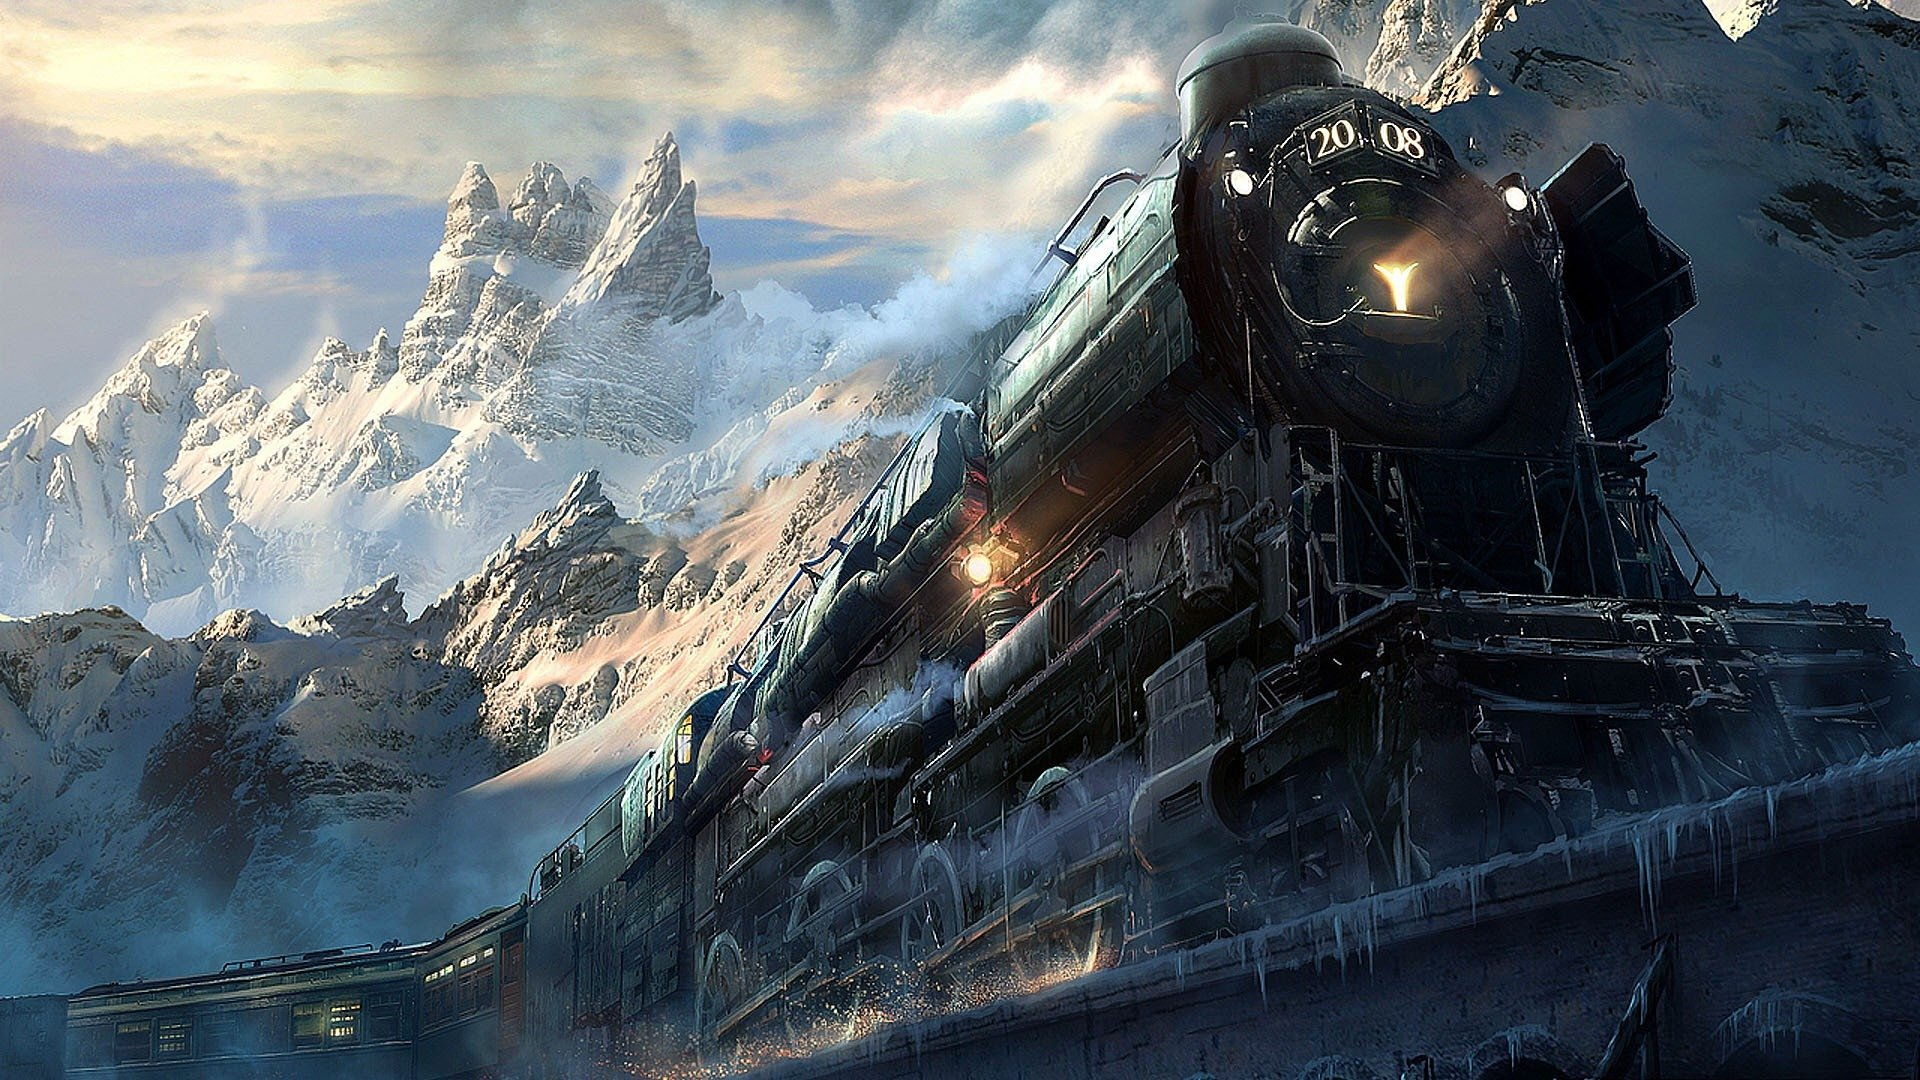 hd wallpaper background id295875 1920x1080 vehicles train